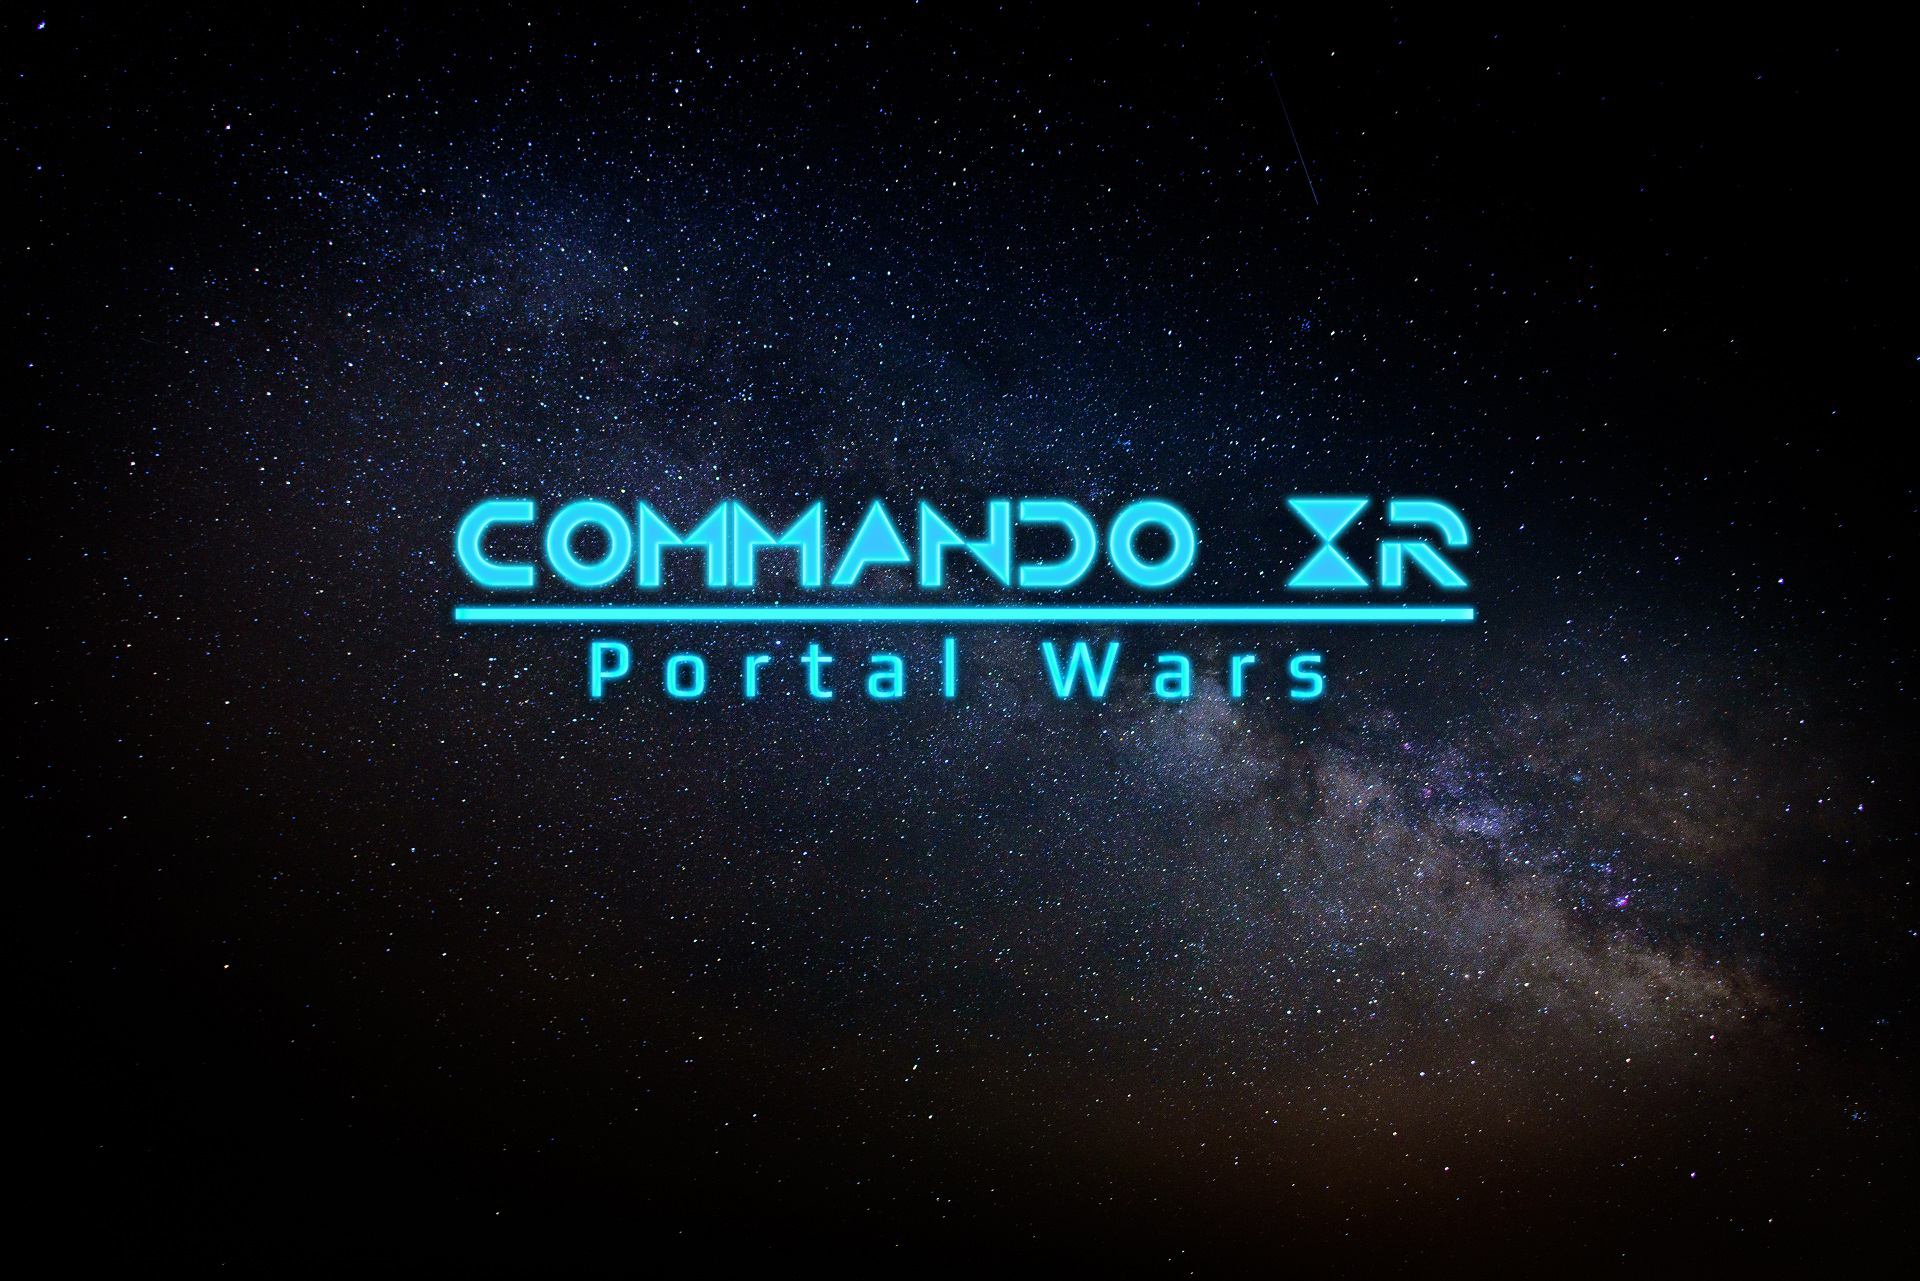 Commando XR - Portal Wars